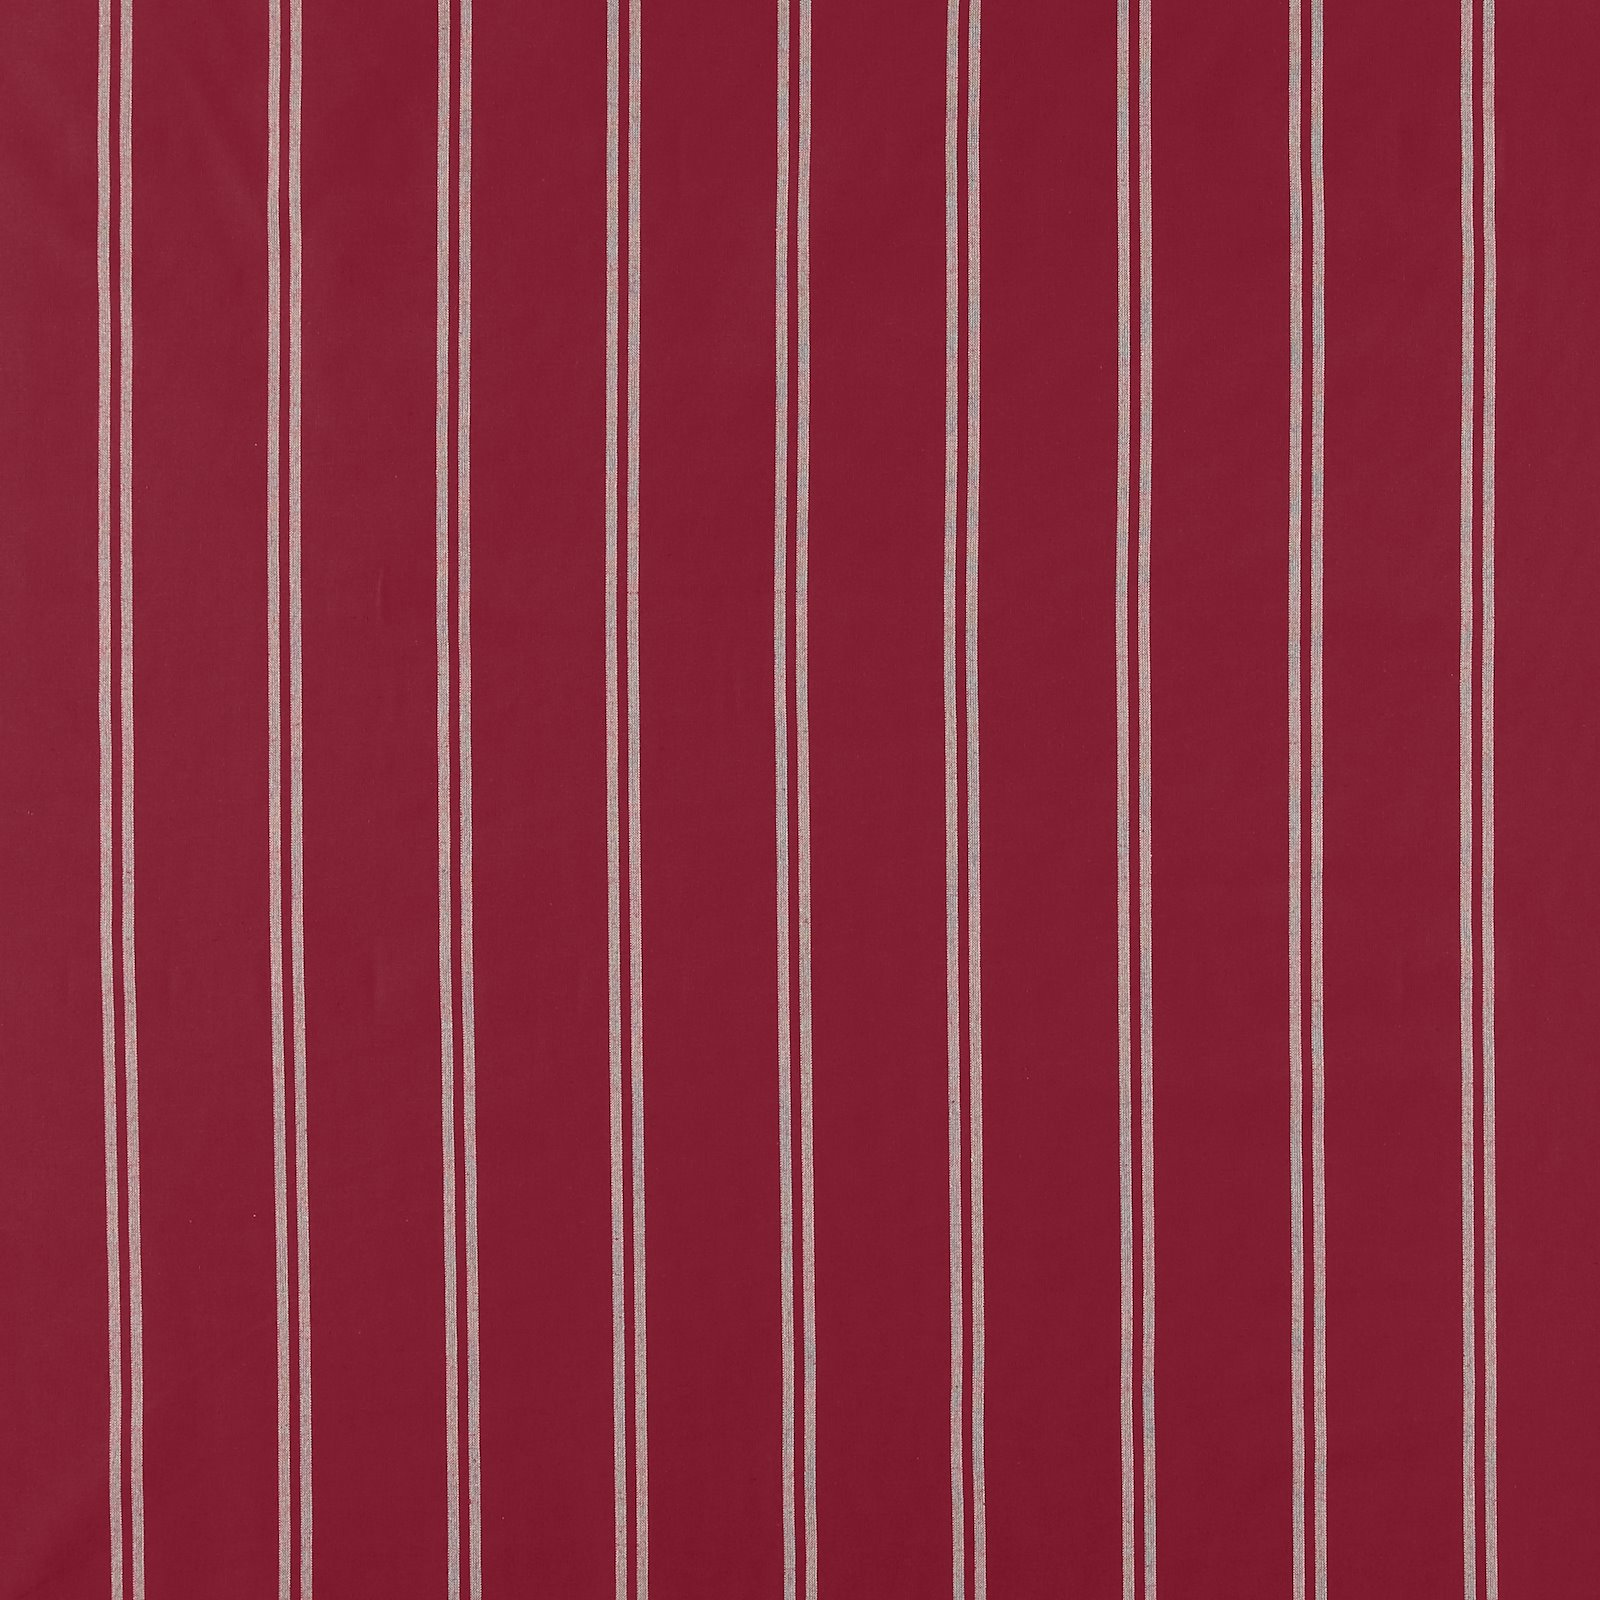 Woven yarn dyed red/off white stripe 816257_pack_sp